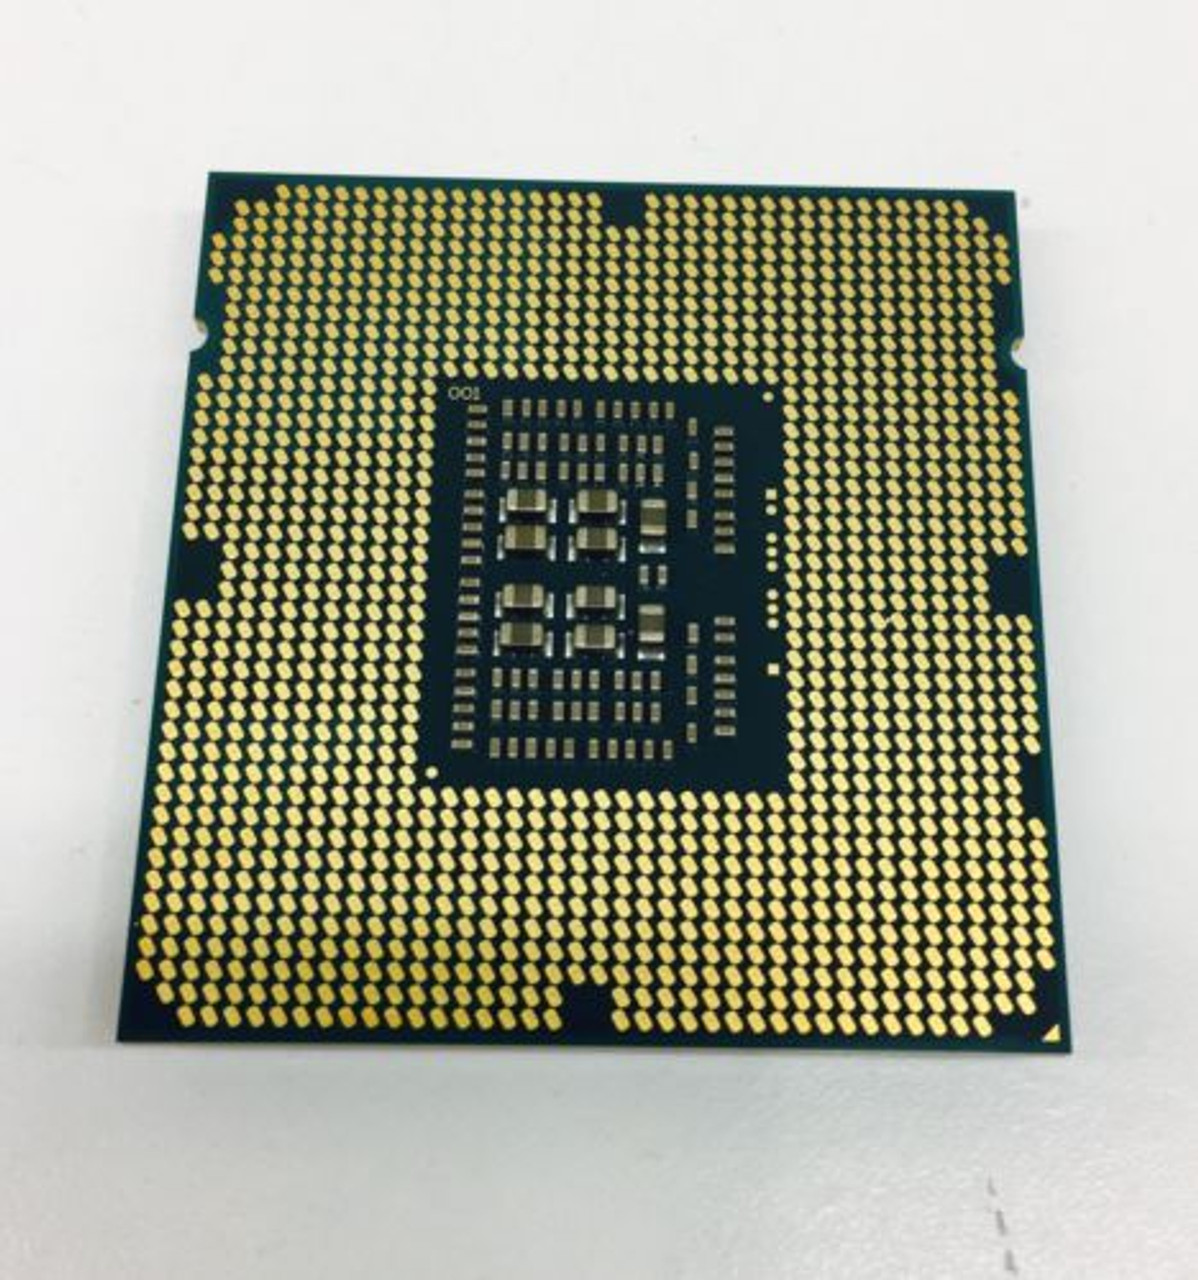 INTEL SR1AK E5-2407 V2 QC 2.4GHZ/10MB Processor